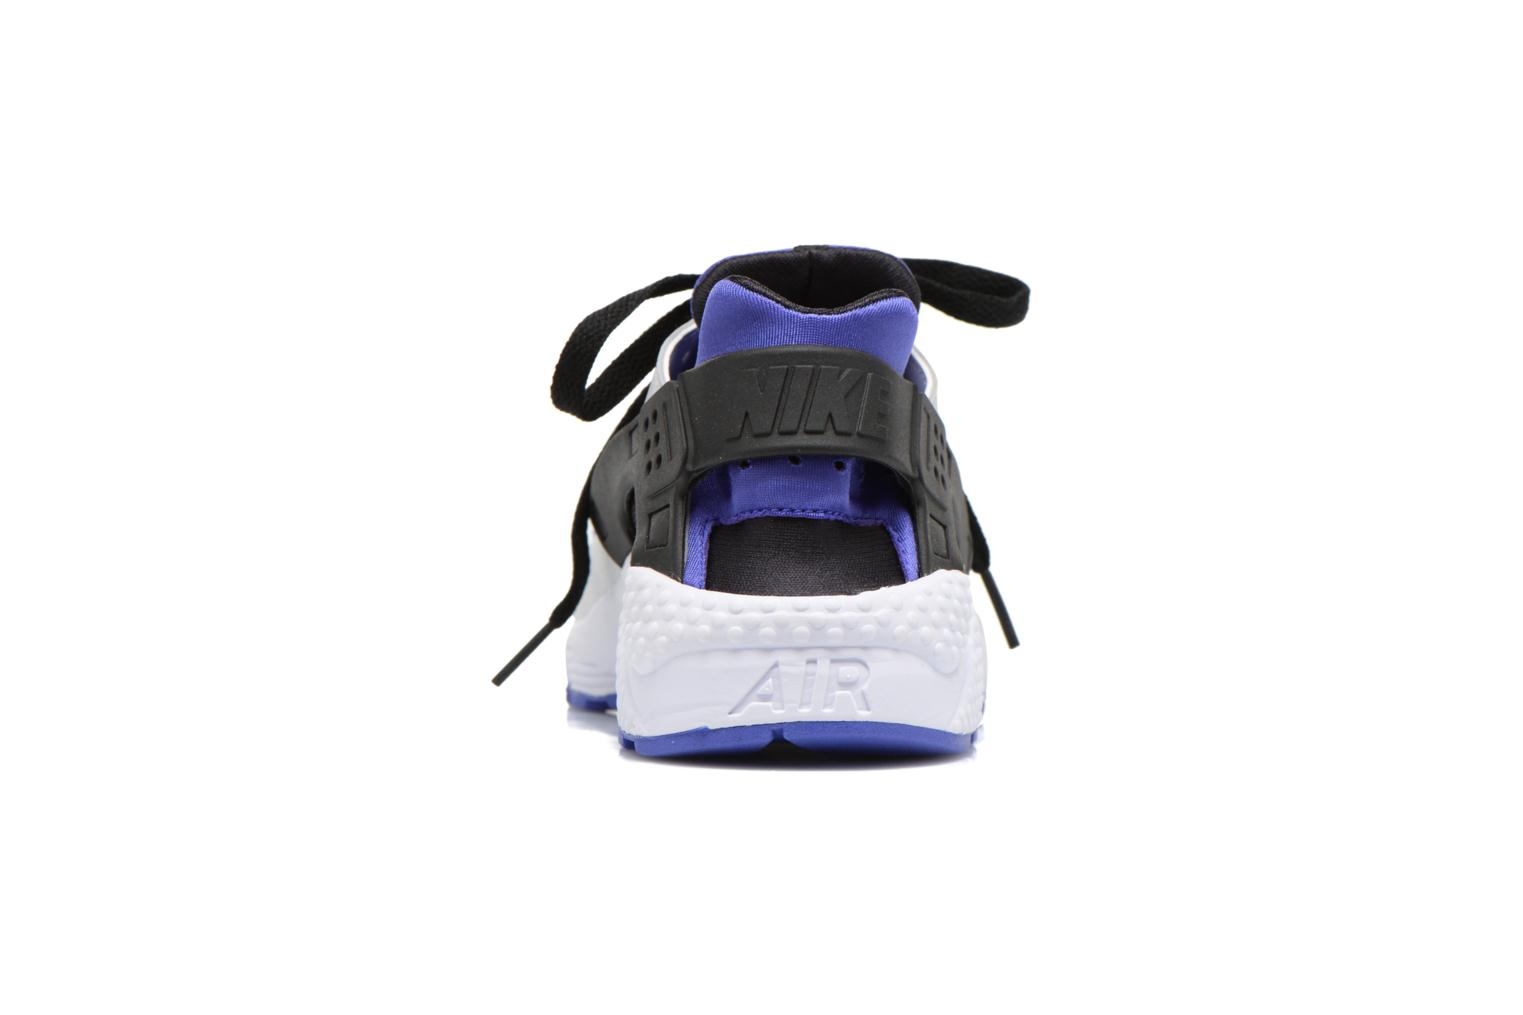 Black/white Nike Nike Air Huarache (Noir)